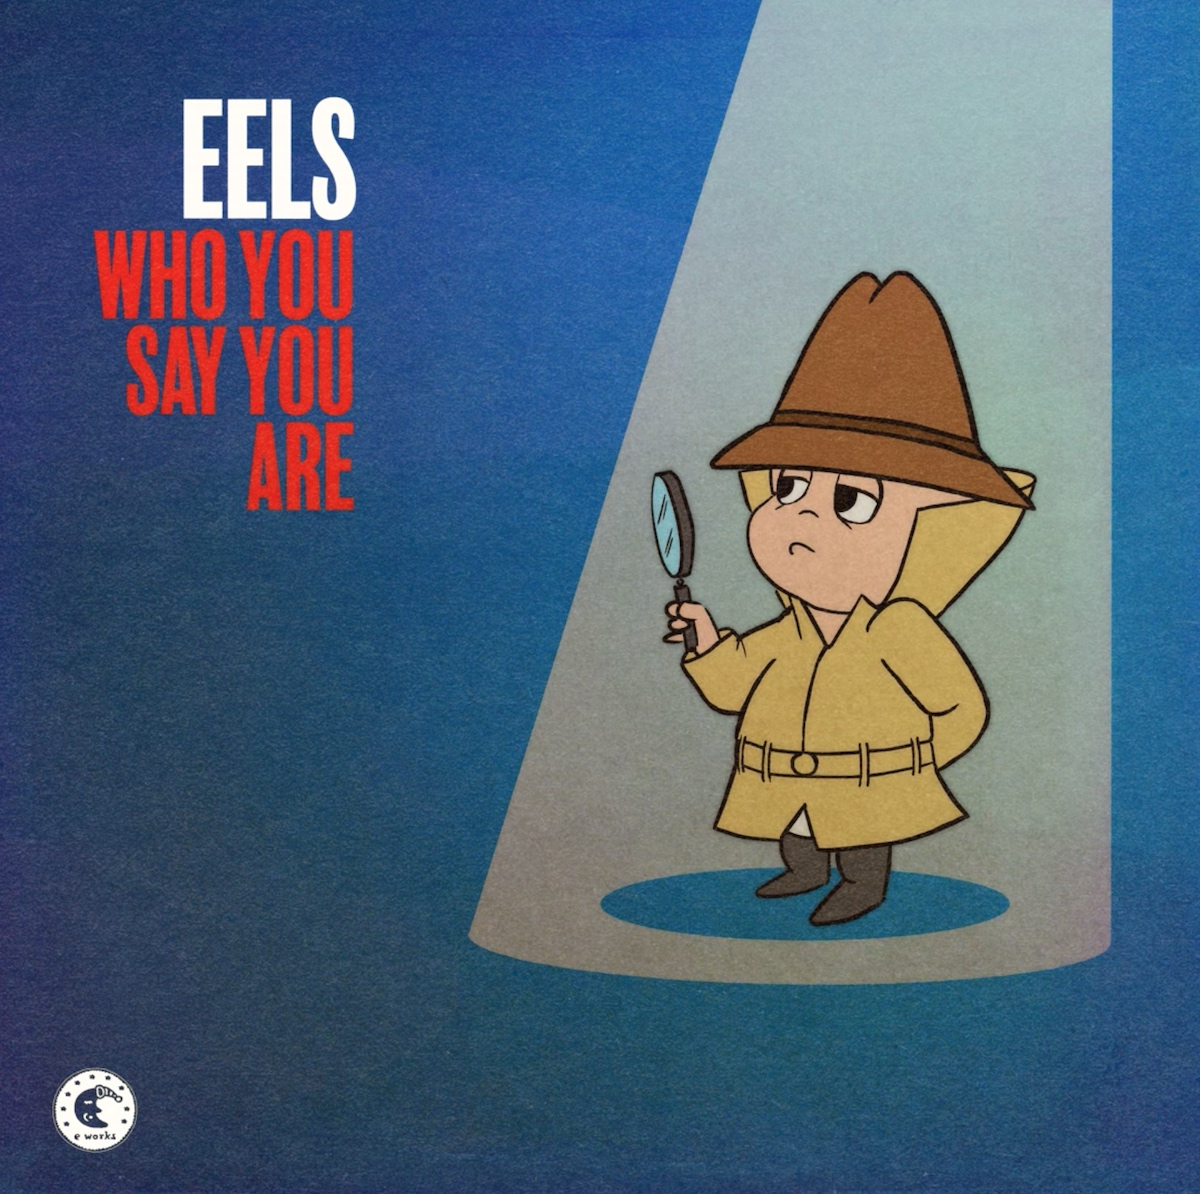 Eels who you say you are new song cover art